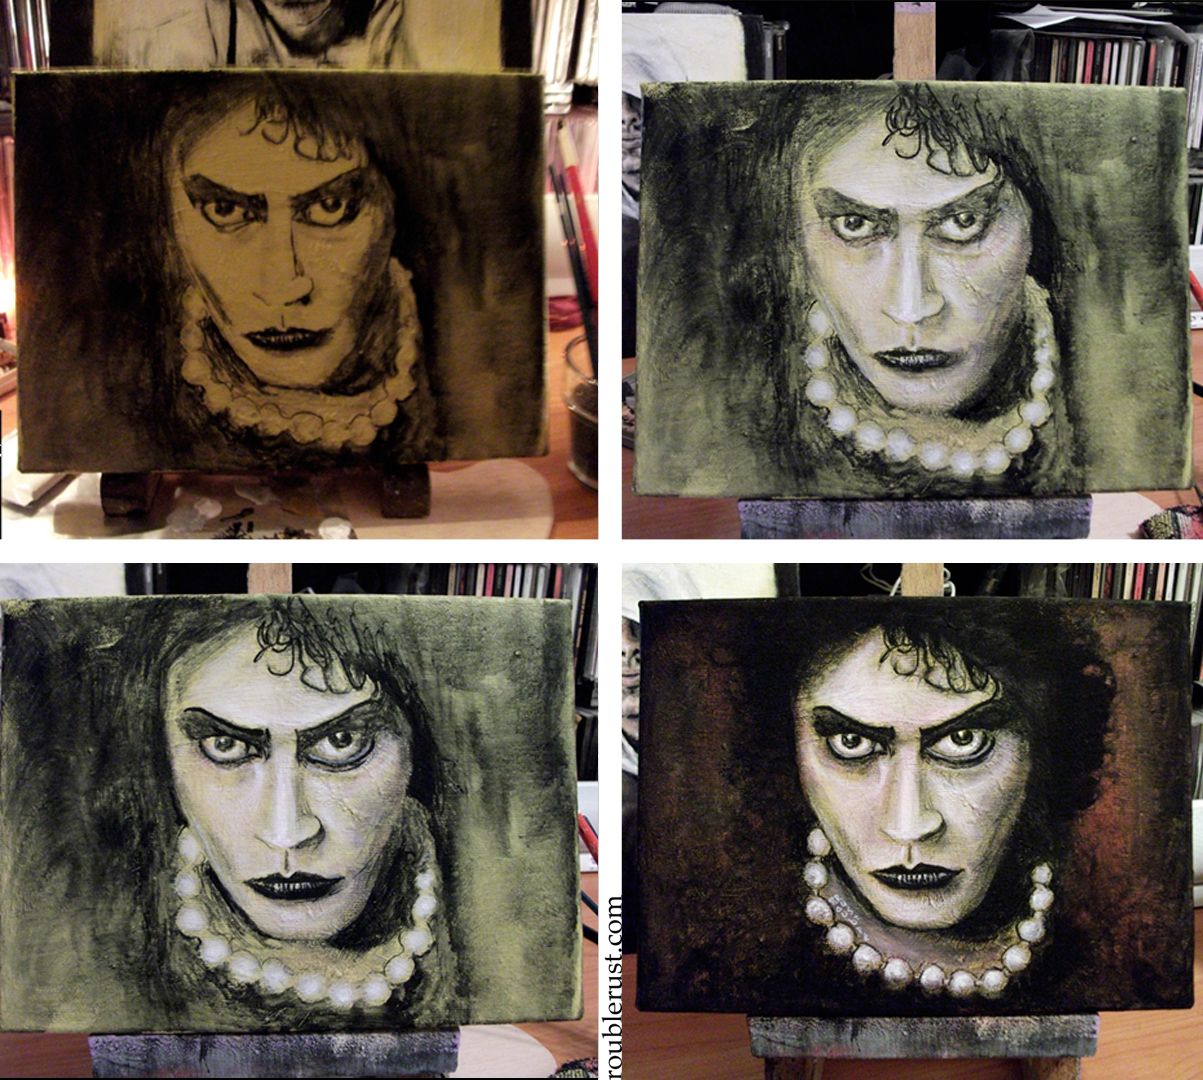 http://www.redbubble.com/people/rust/works/7532658-dr-frank-n-furter?asc=u